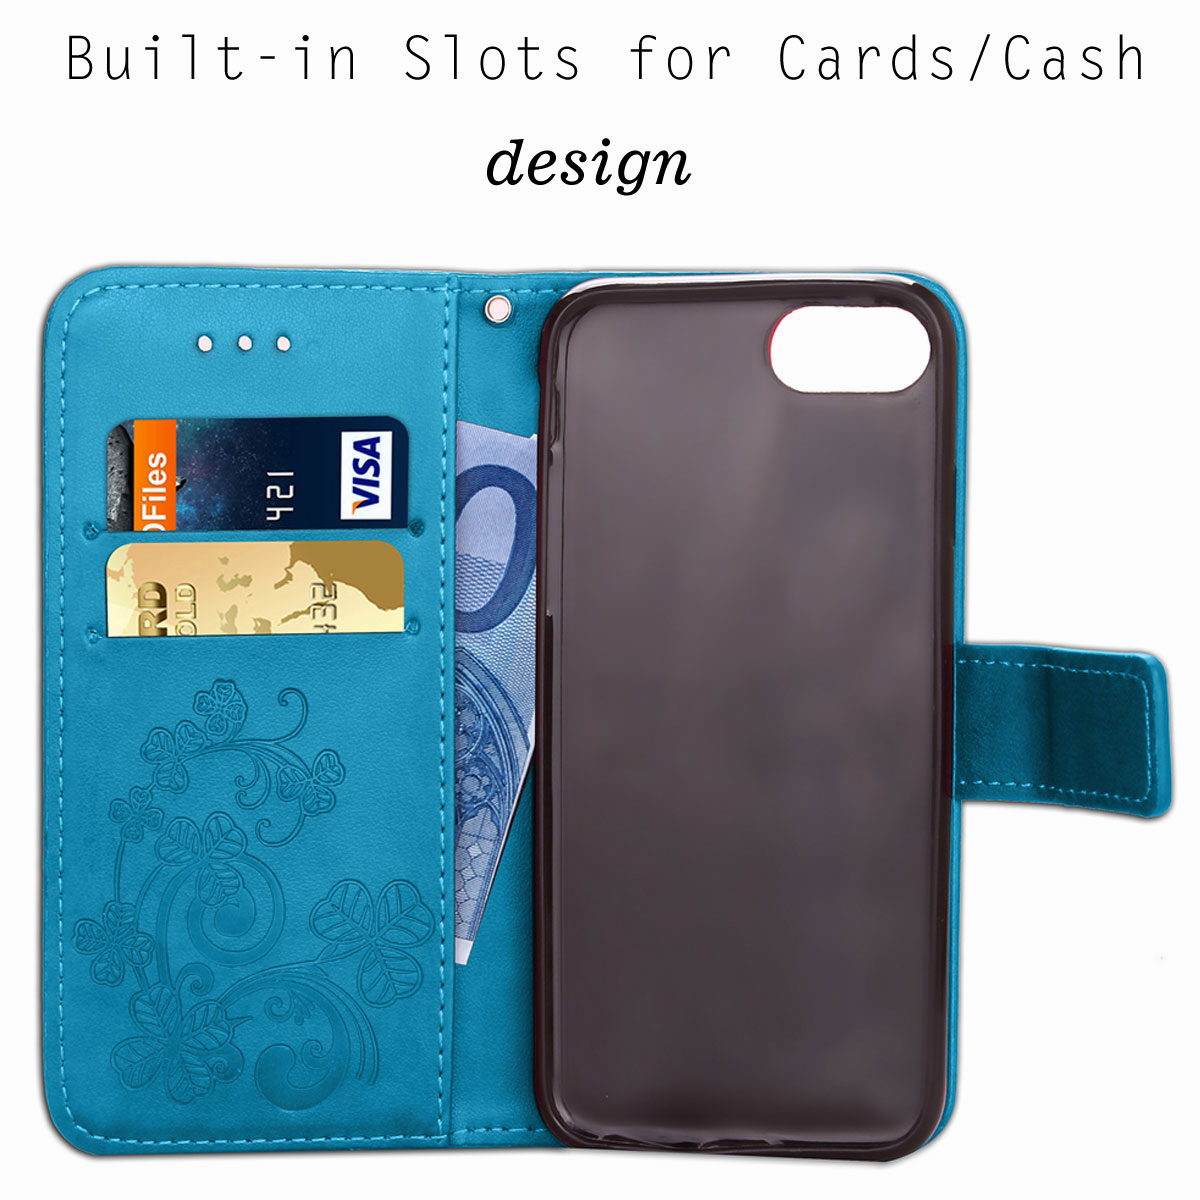 For-Apple-iPhone-Phones-Soft-Leather-Magnetic-Wallet-Card-Holder-Sim-Case-Cover thumbnail 30